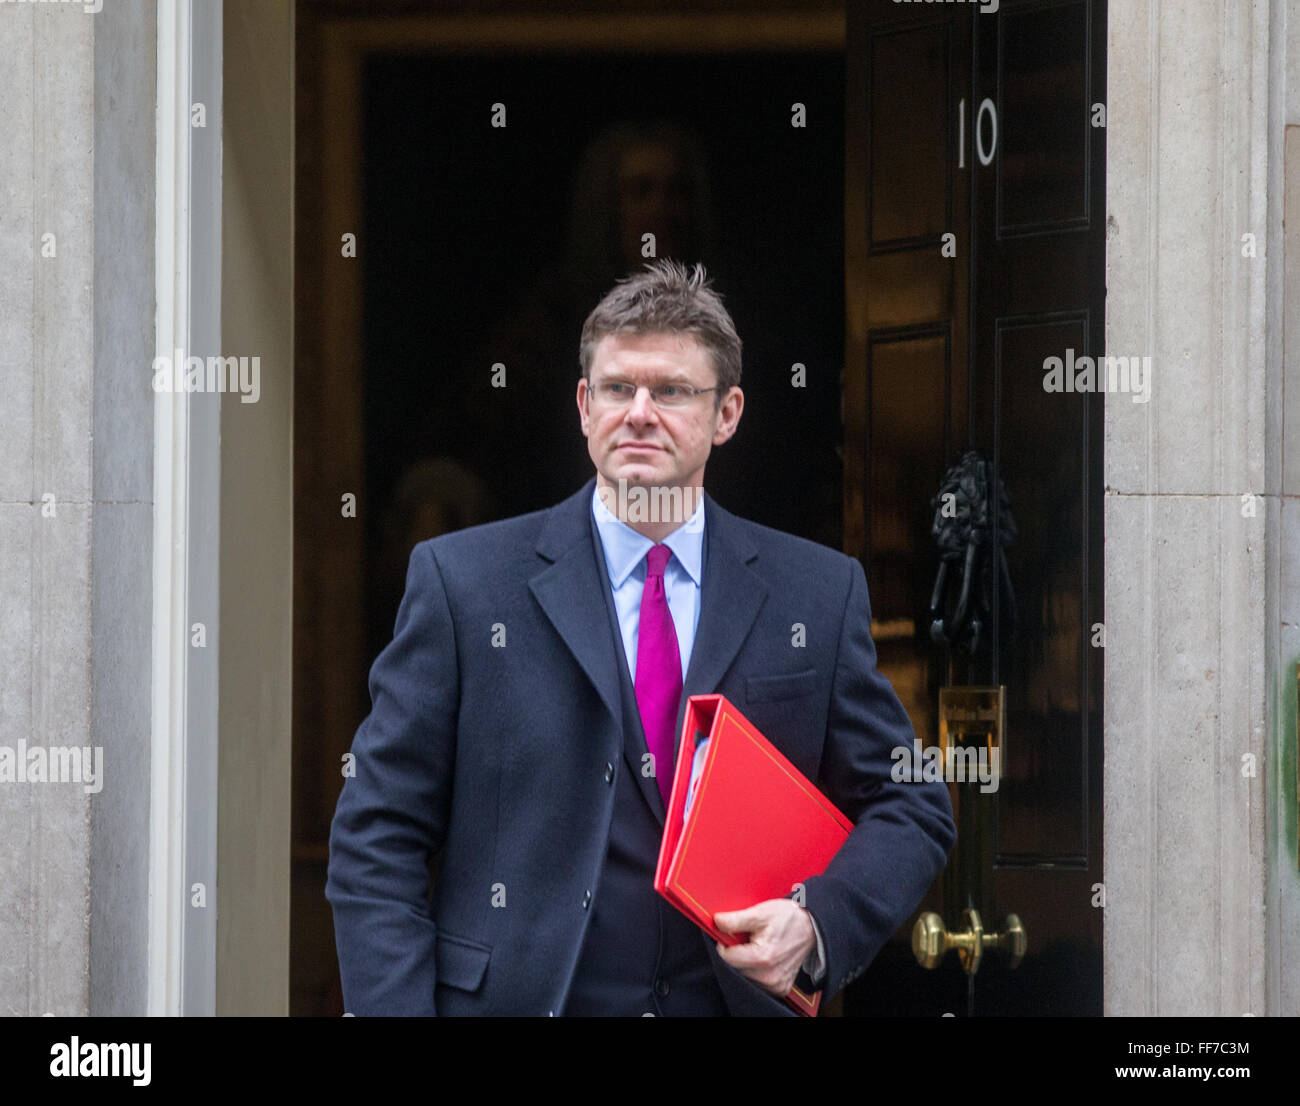 Communities and Local Government Secretary,Greg Clark at 10 Downing street for a cabinet meeting - Stock Image